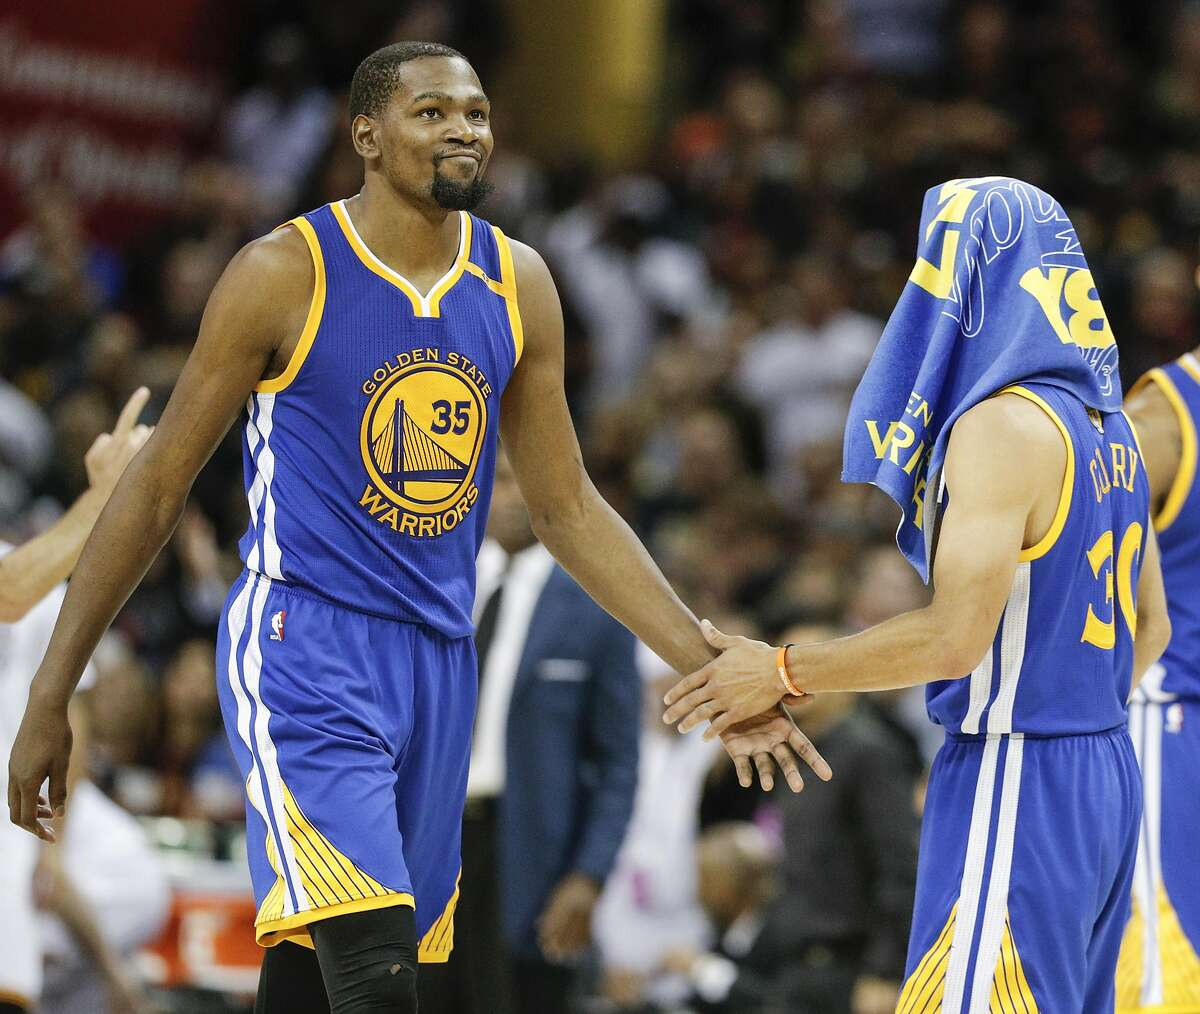 Golden State Warriors' Kevin Durant and Stephen Curry slap hands in the fourth quarter during Game 3 of the 2017 NBA Finals at Quicken Loans Arena on Wednesday, June 7, 2017 in Cleveland, Ohio